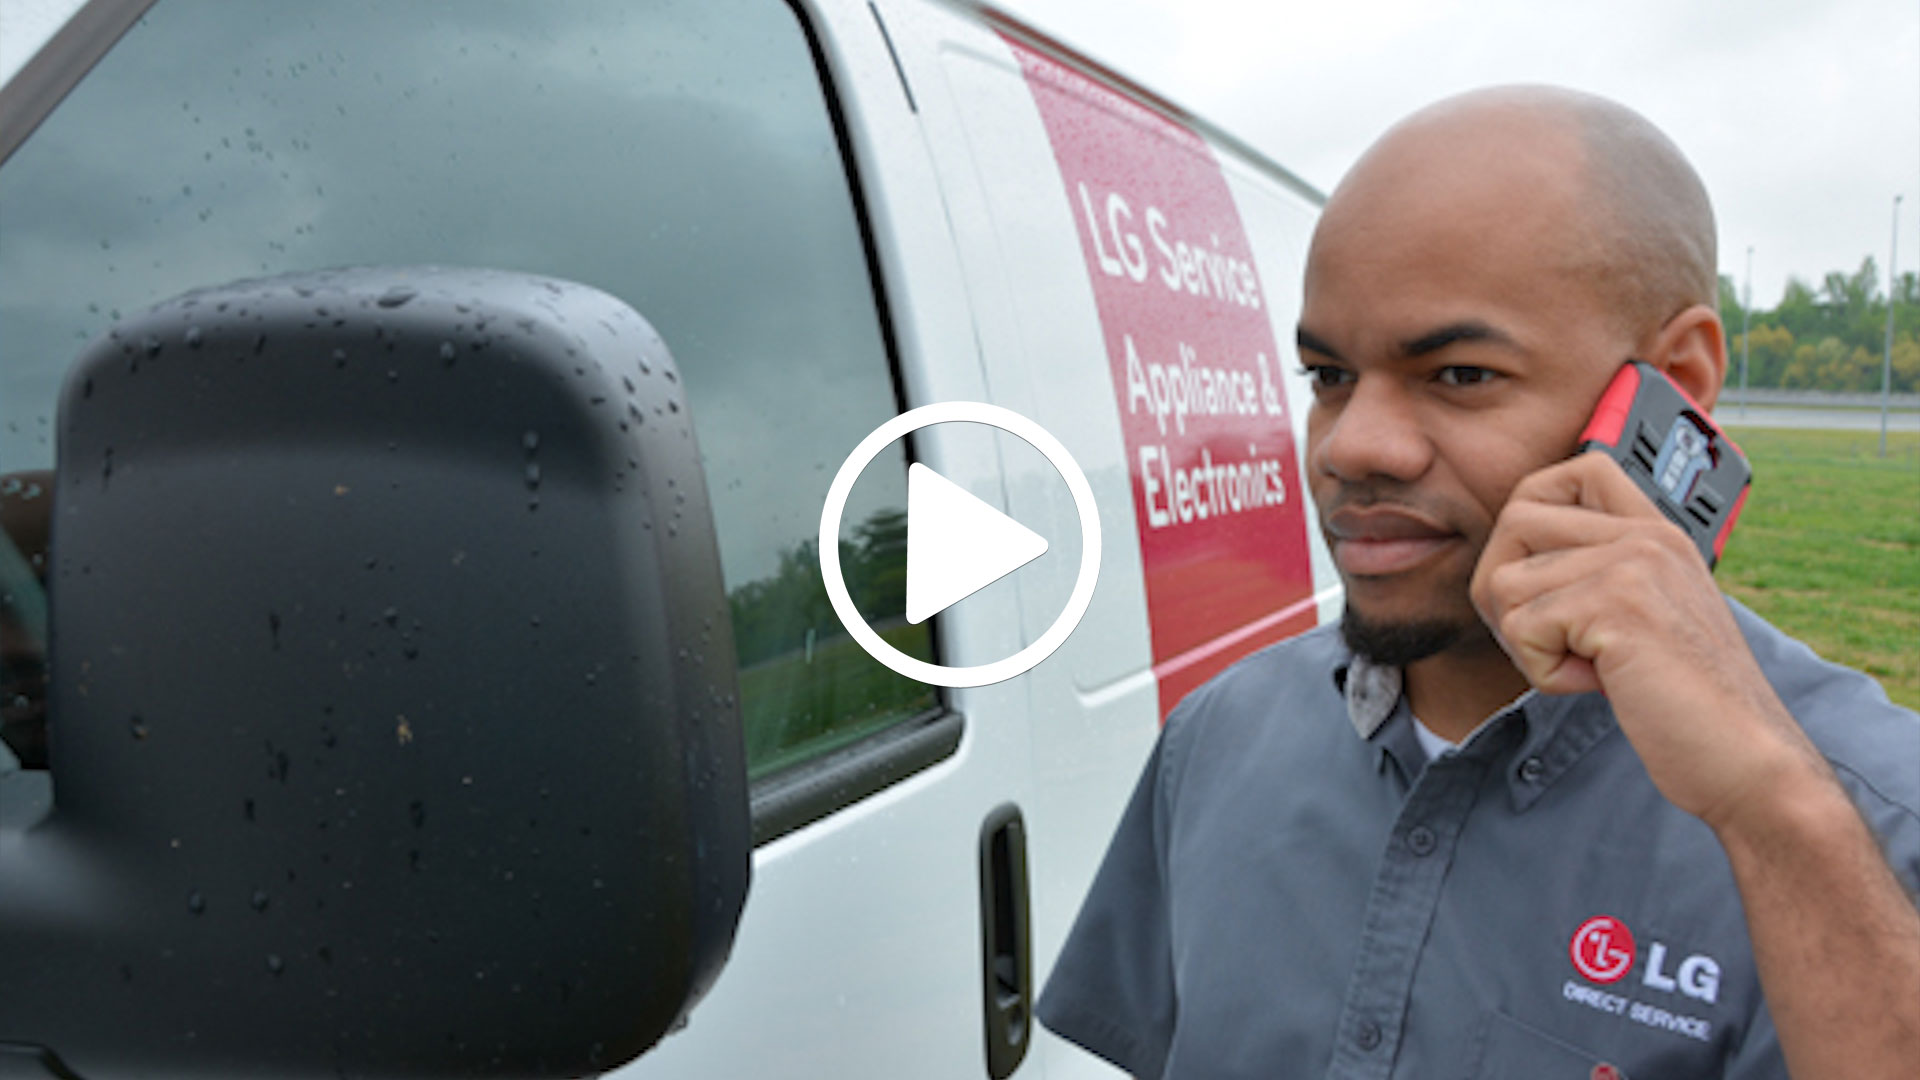 Watch our careers video for available job opening Field Service Technician in Arlington, VA